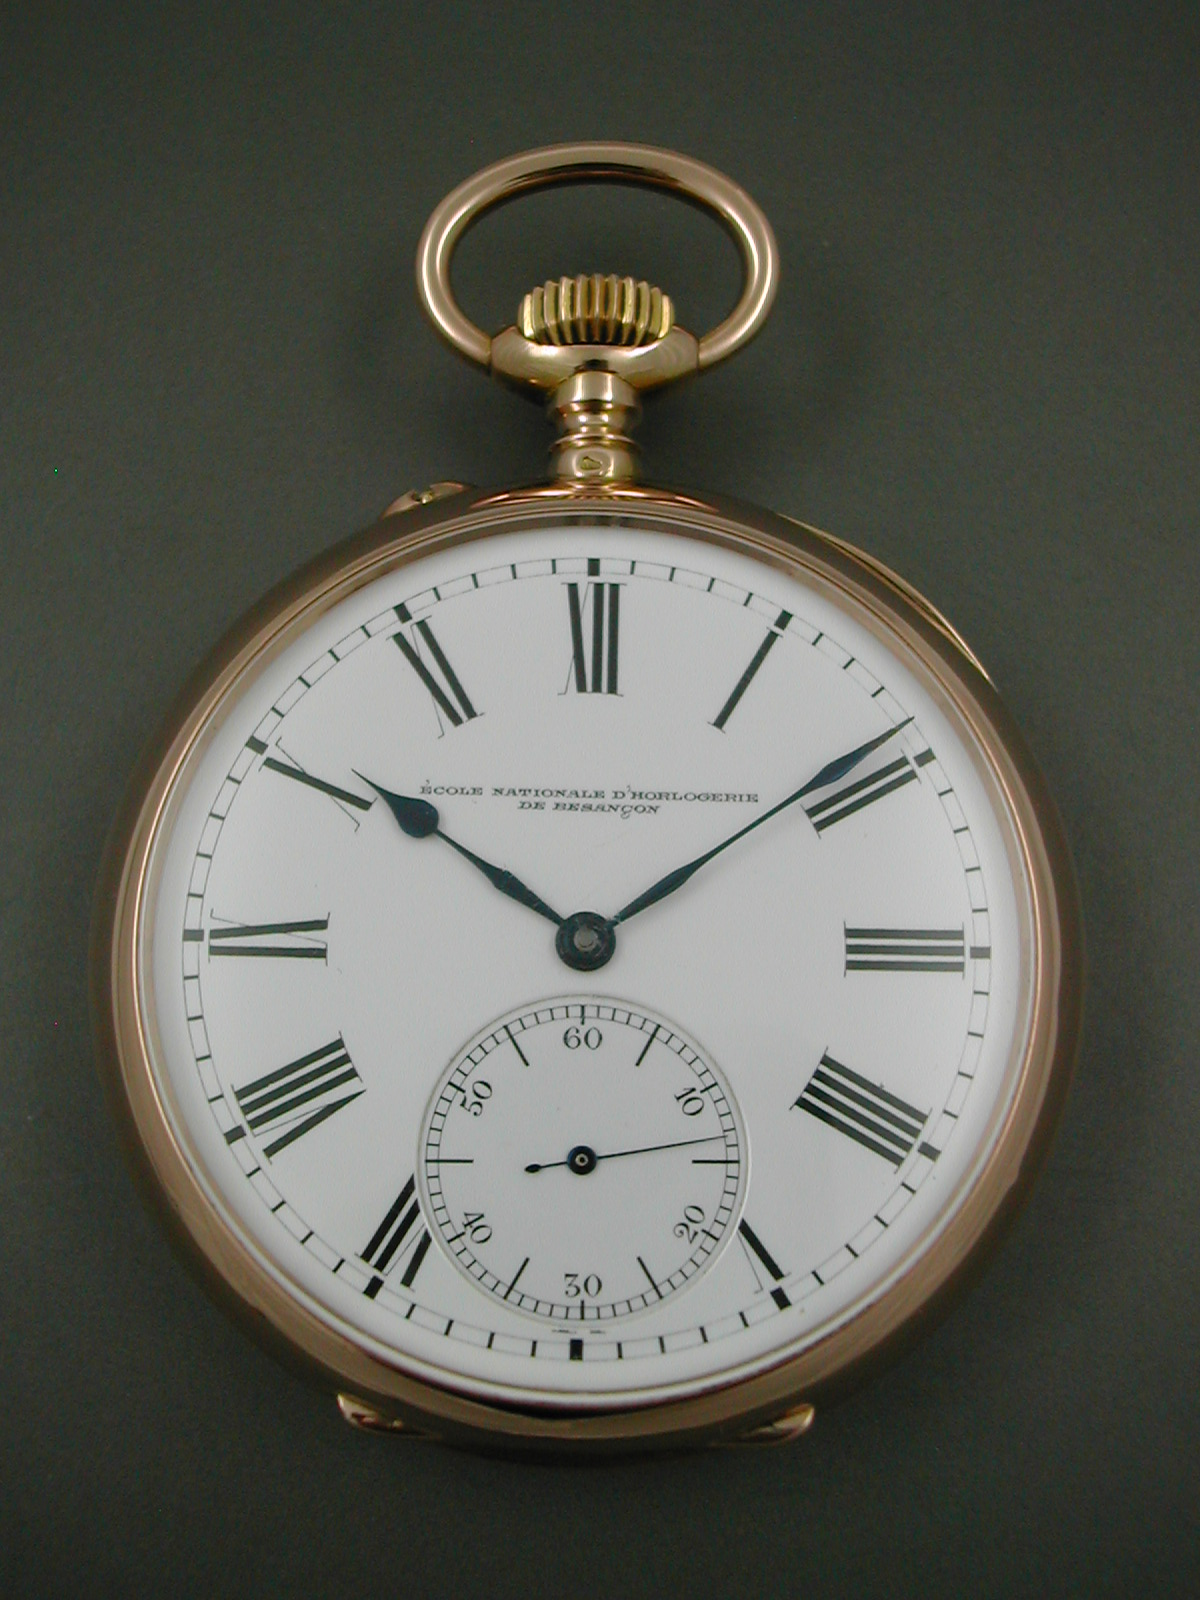 National Horology School Becanson France